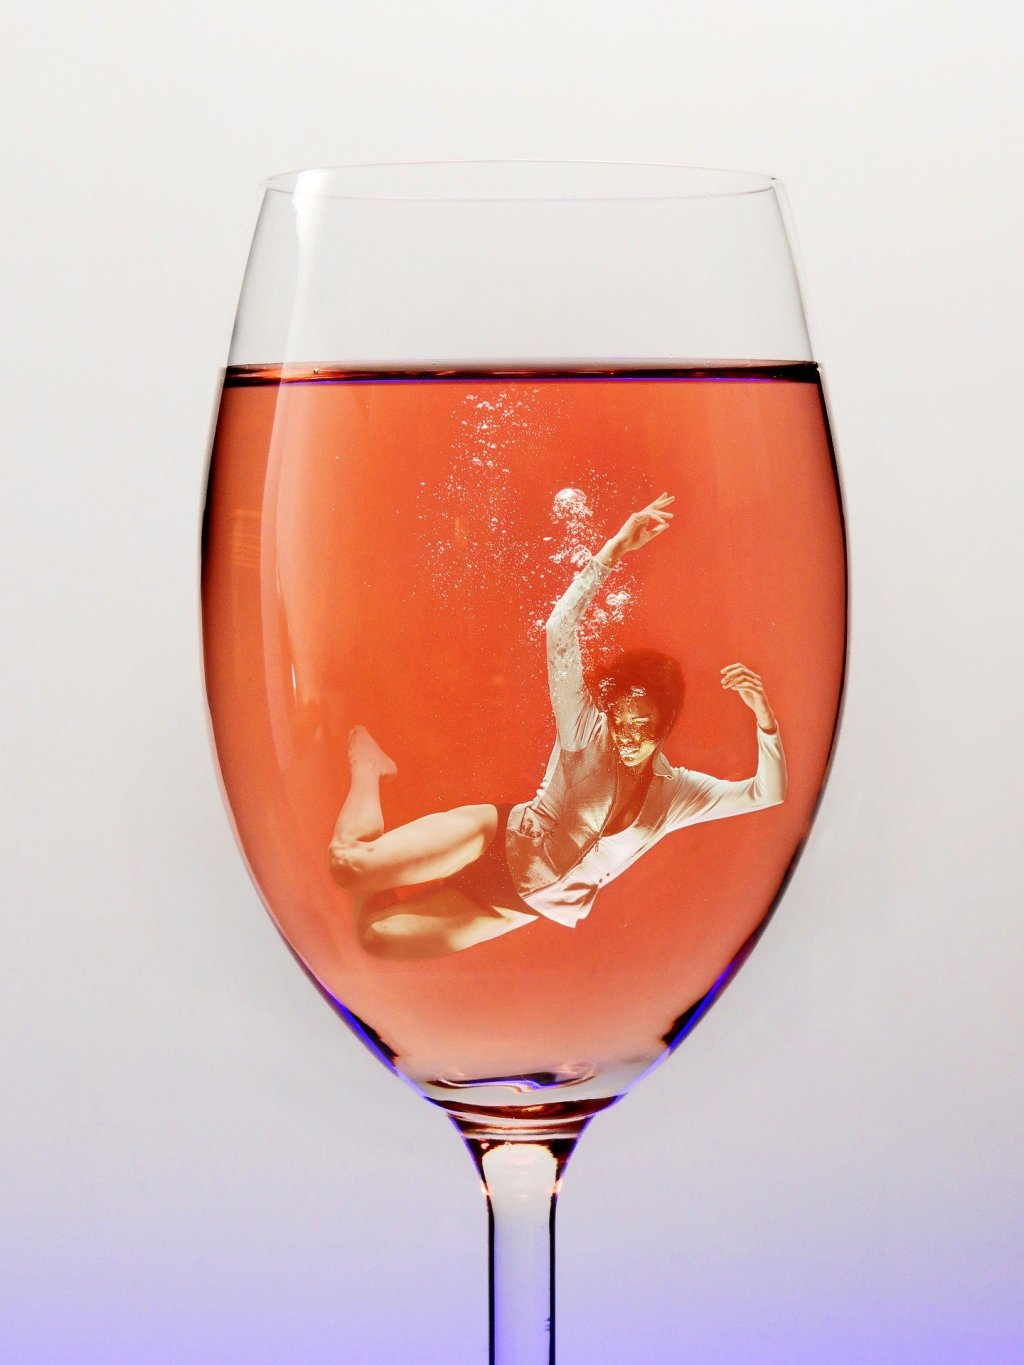 person swimming in a glass of alcohol